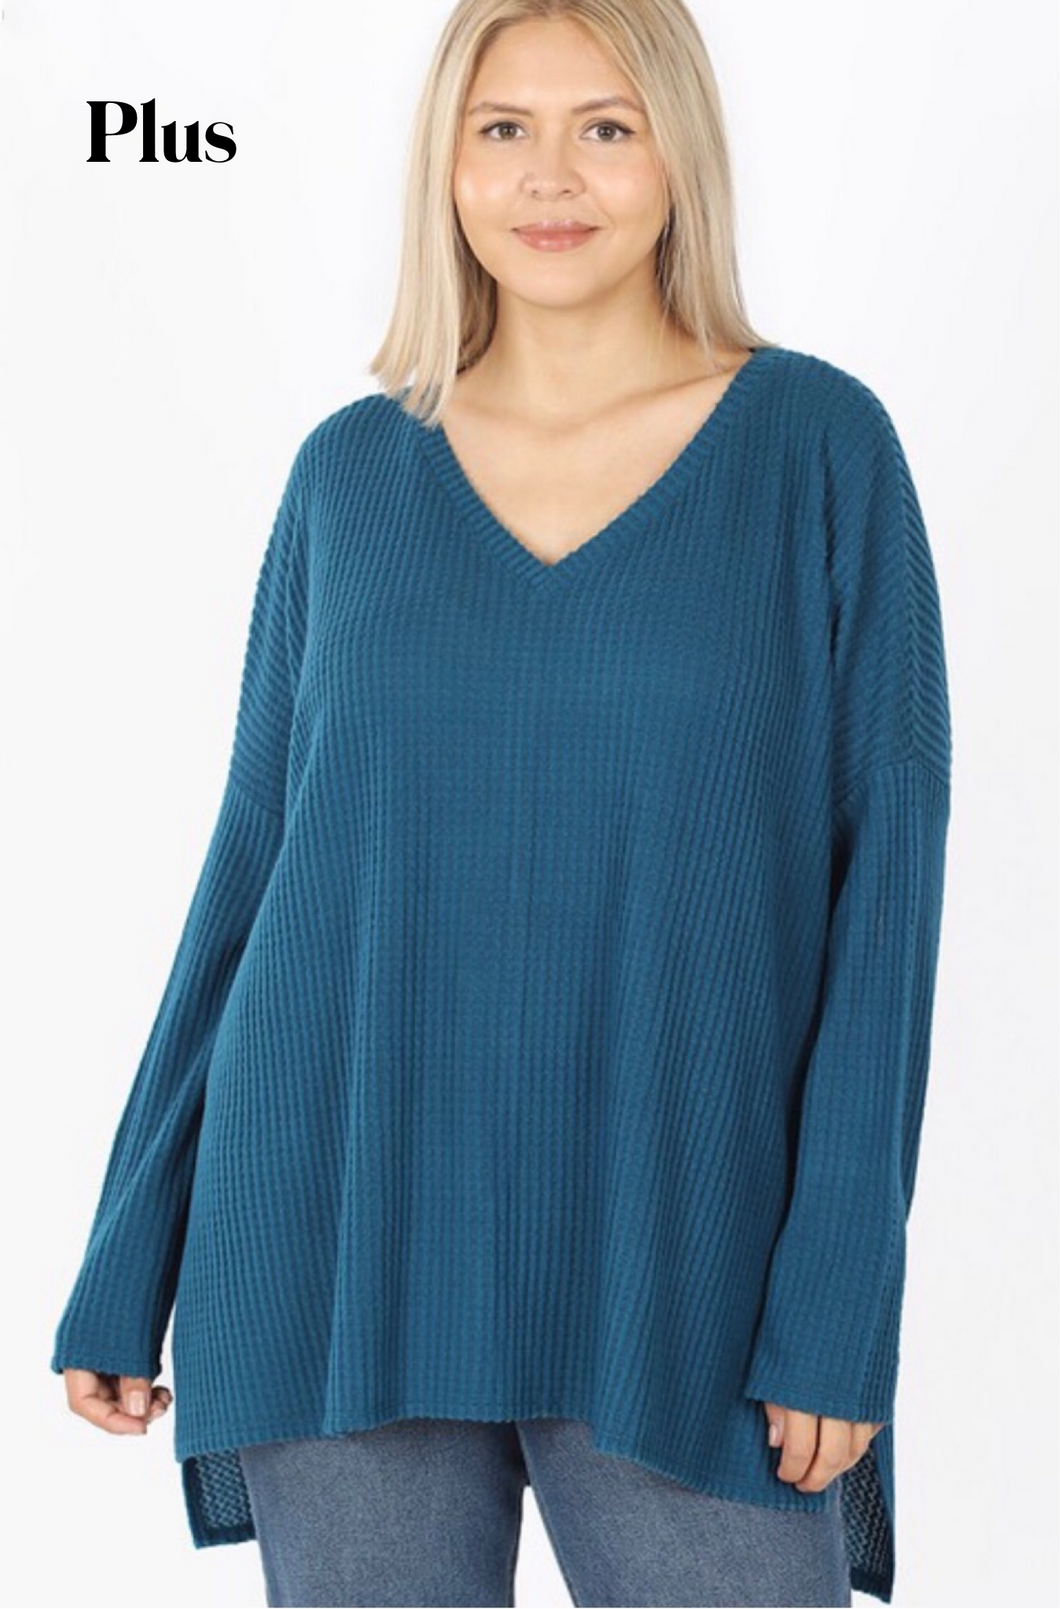 Teal Thermal Long Sleeve Top